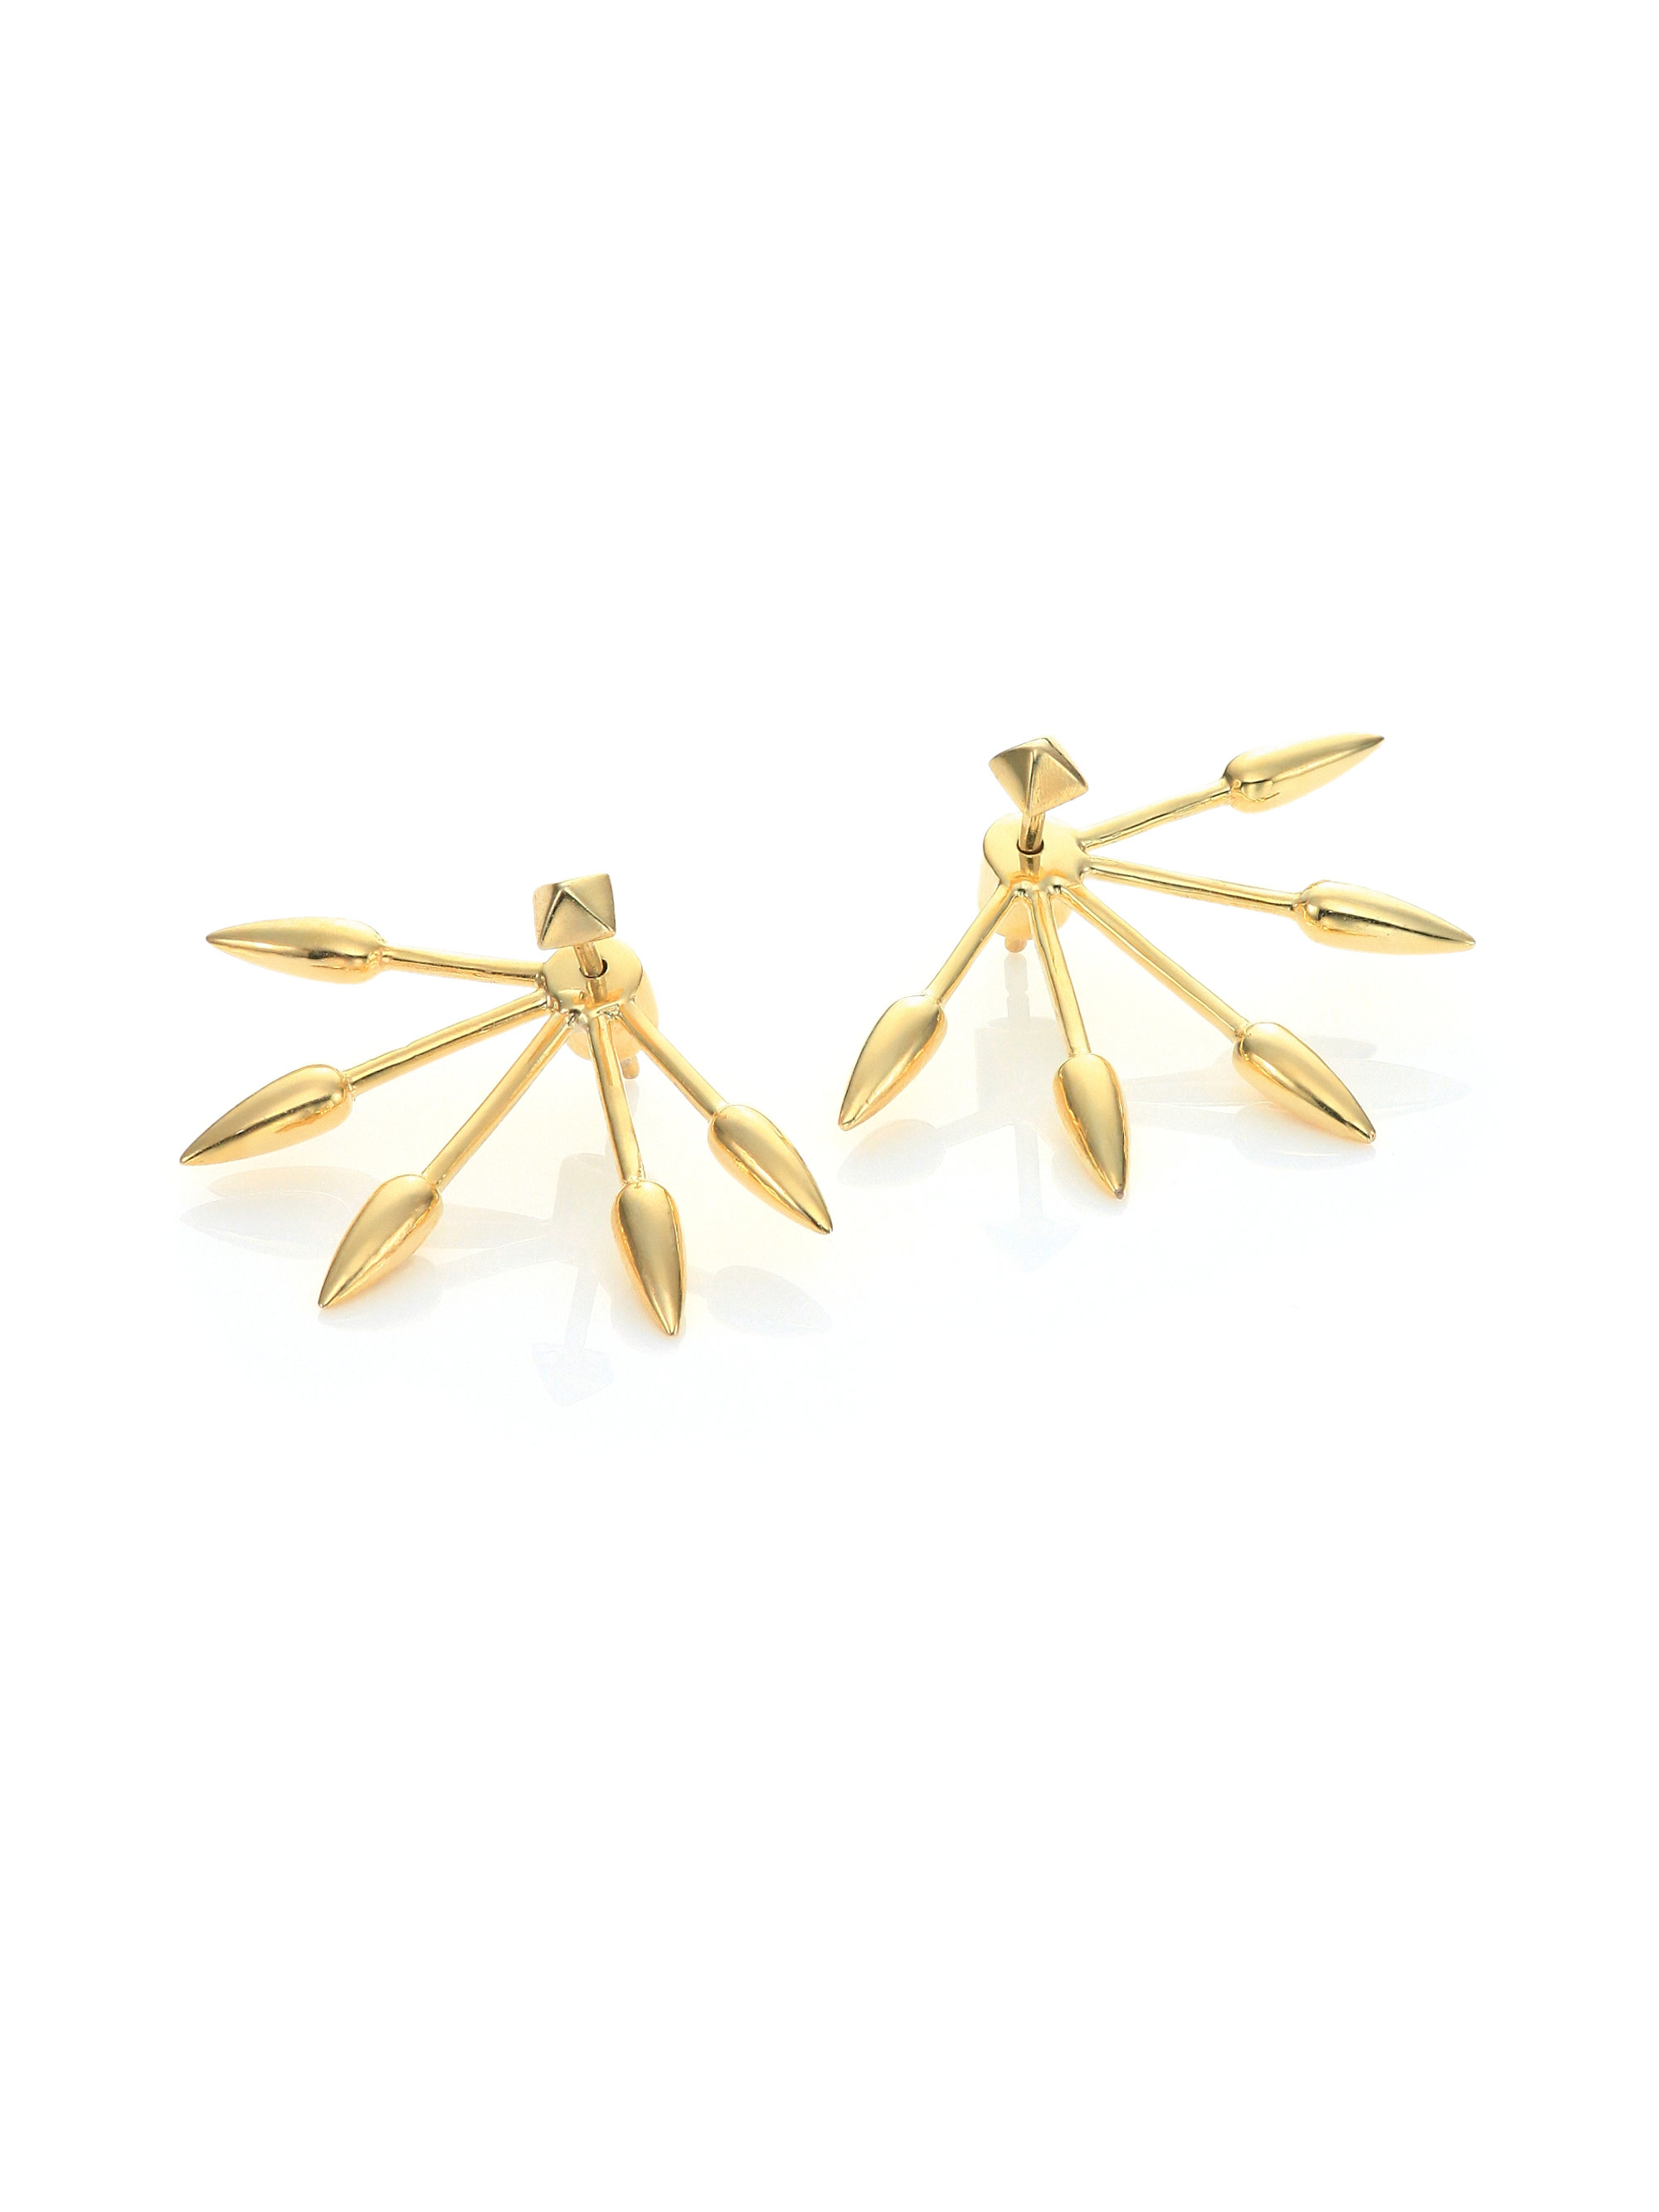 five spike ear jacket stud earrings set in